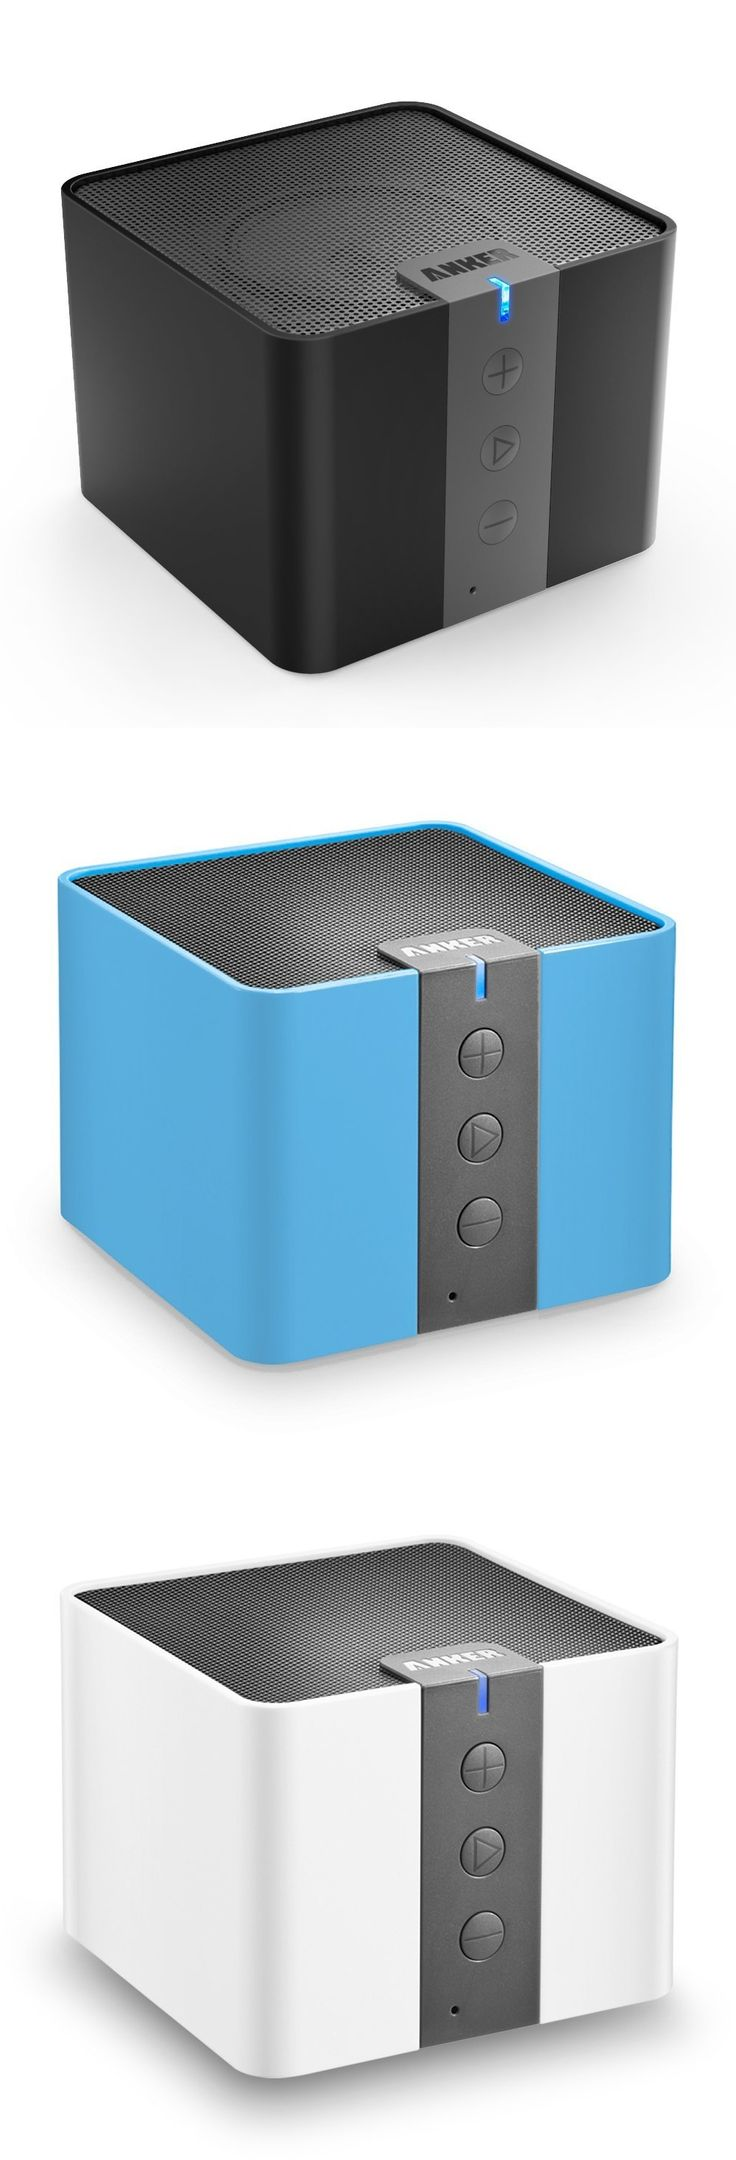 Anker® Portable Wireless Bluetooth Speaker with 20 Hour Battery Life and Full, High-Def Sound for iPhone, iPad, Samsung, Nexus, HTC, Nokia and more. This one is also the #1 Best Seller in Computer Speakers. To get more updates, follow Best Buy Portable Speakers.